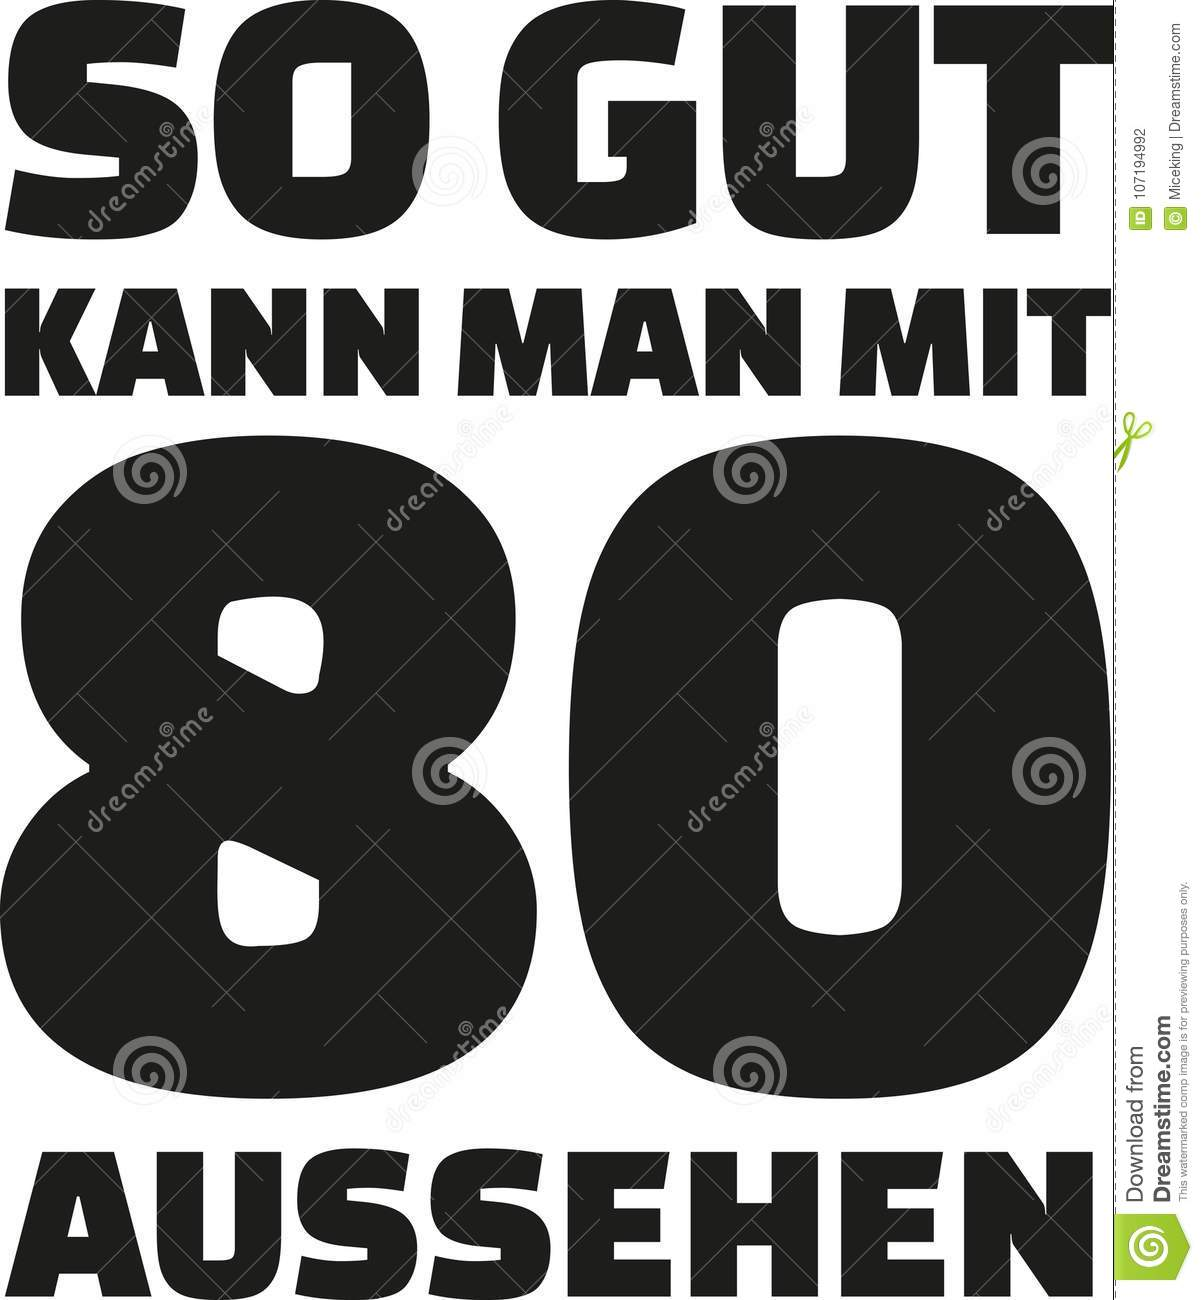 80th Birthday German This Is How Good You Can Look With 80 Years